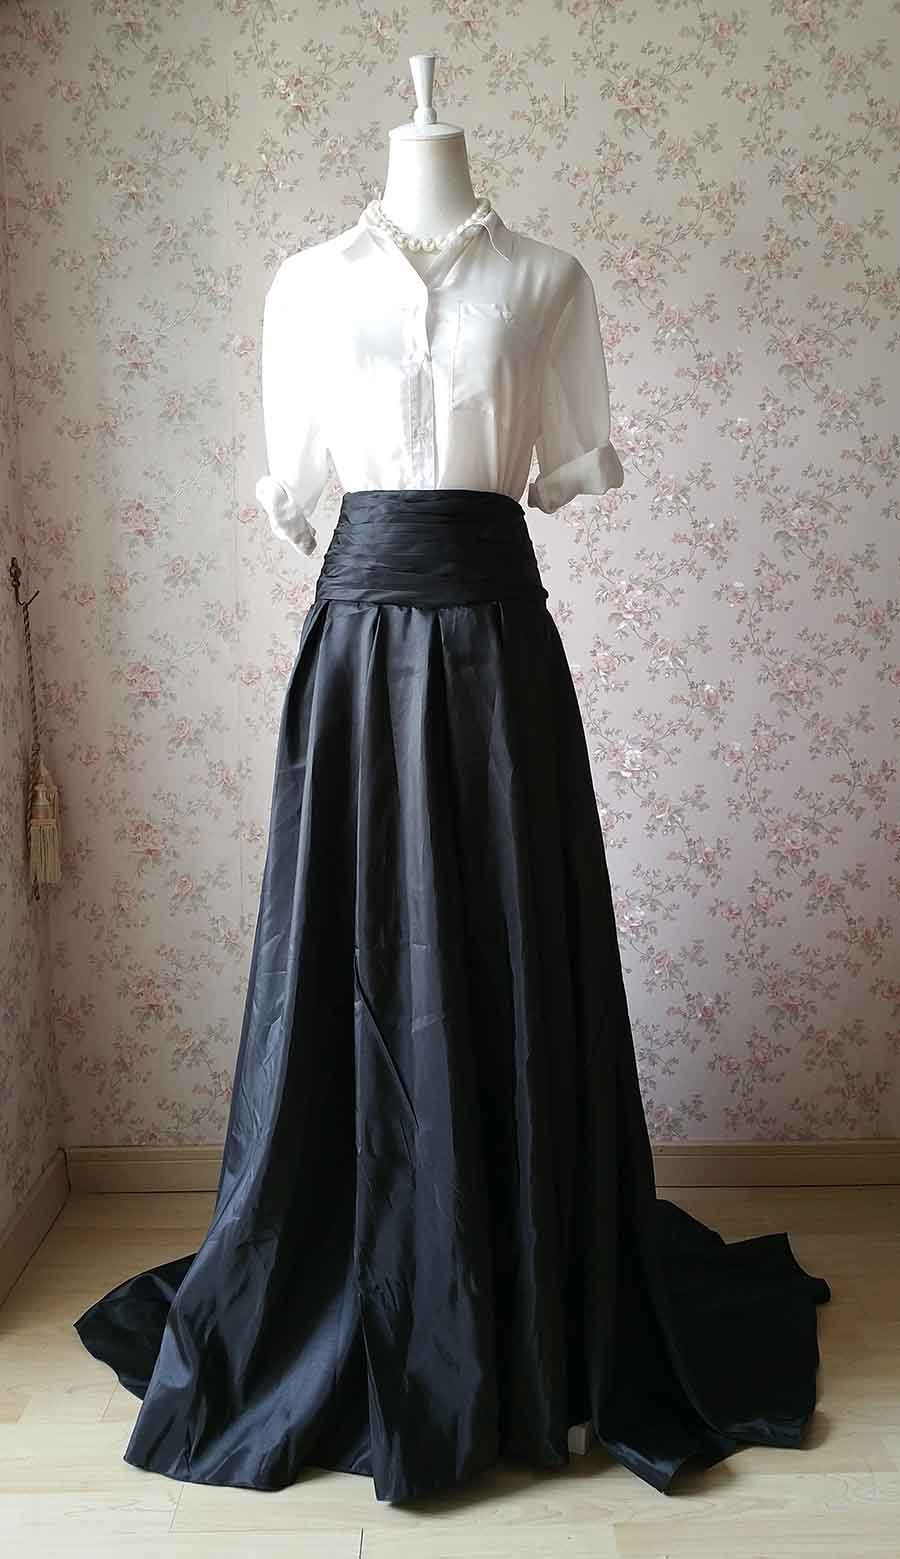 Women High Waisted Black Maxi Skirt Pleated Maxi Skirt with Train Evening Skirt